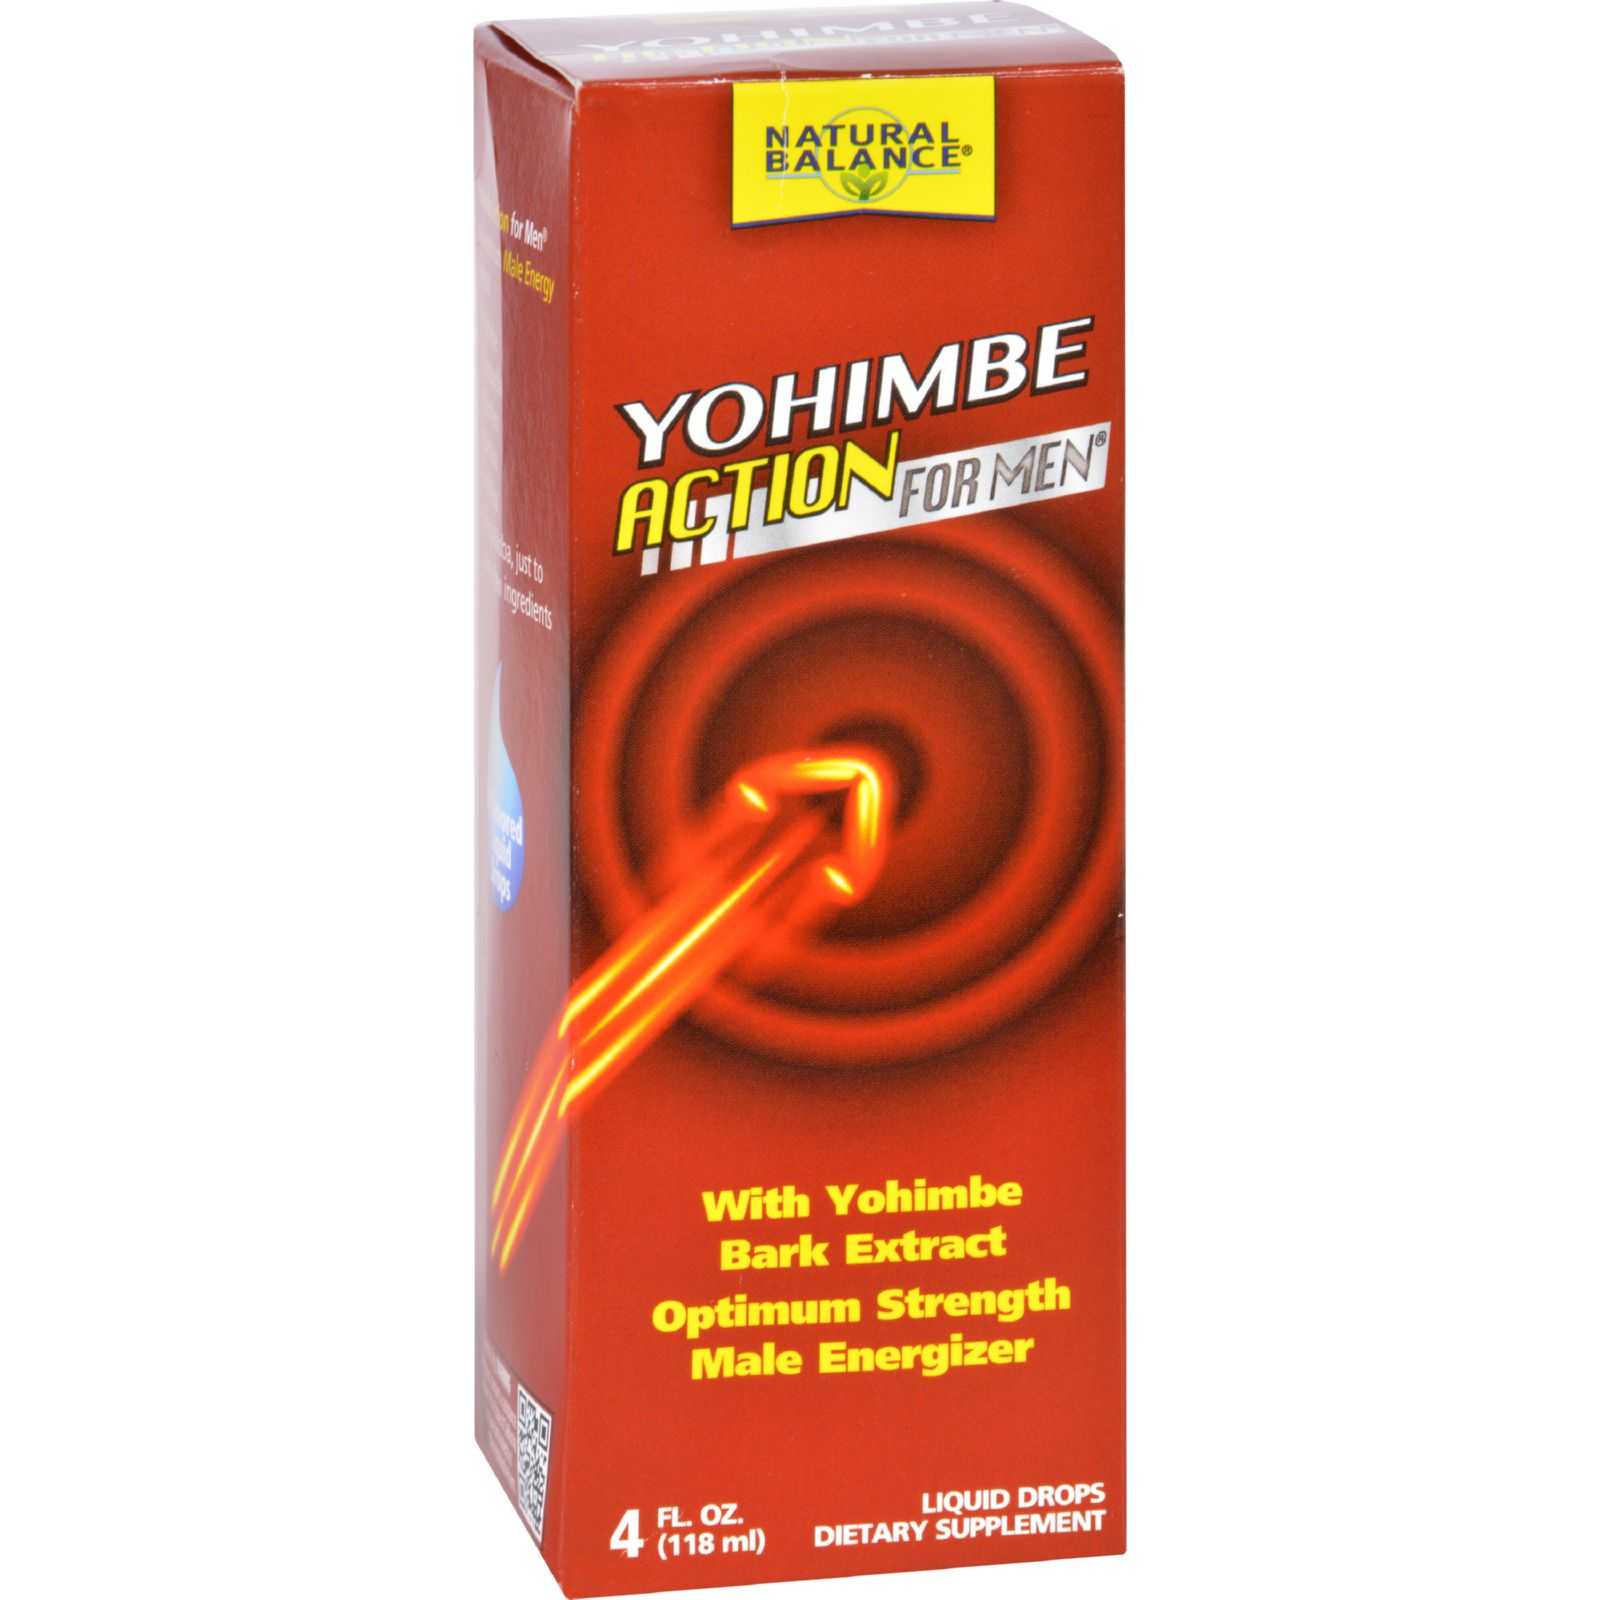 Natural Balance Yohimbe Action For Men - 4 oz